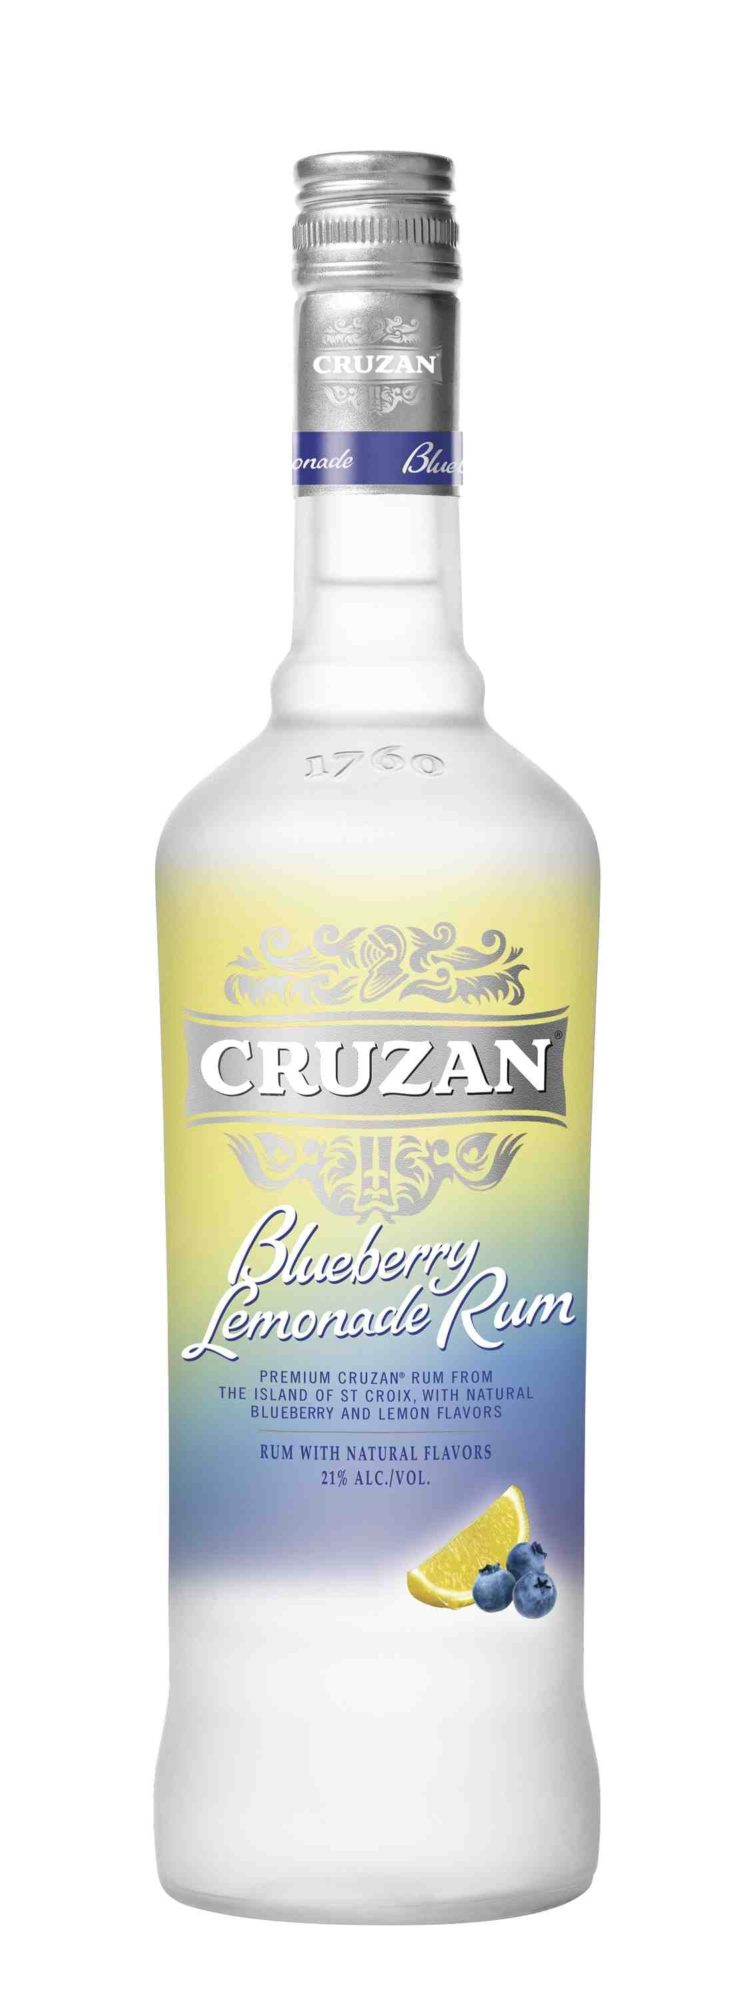 Image result for cruzan blueberry lemonade rum price